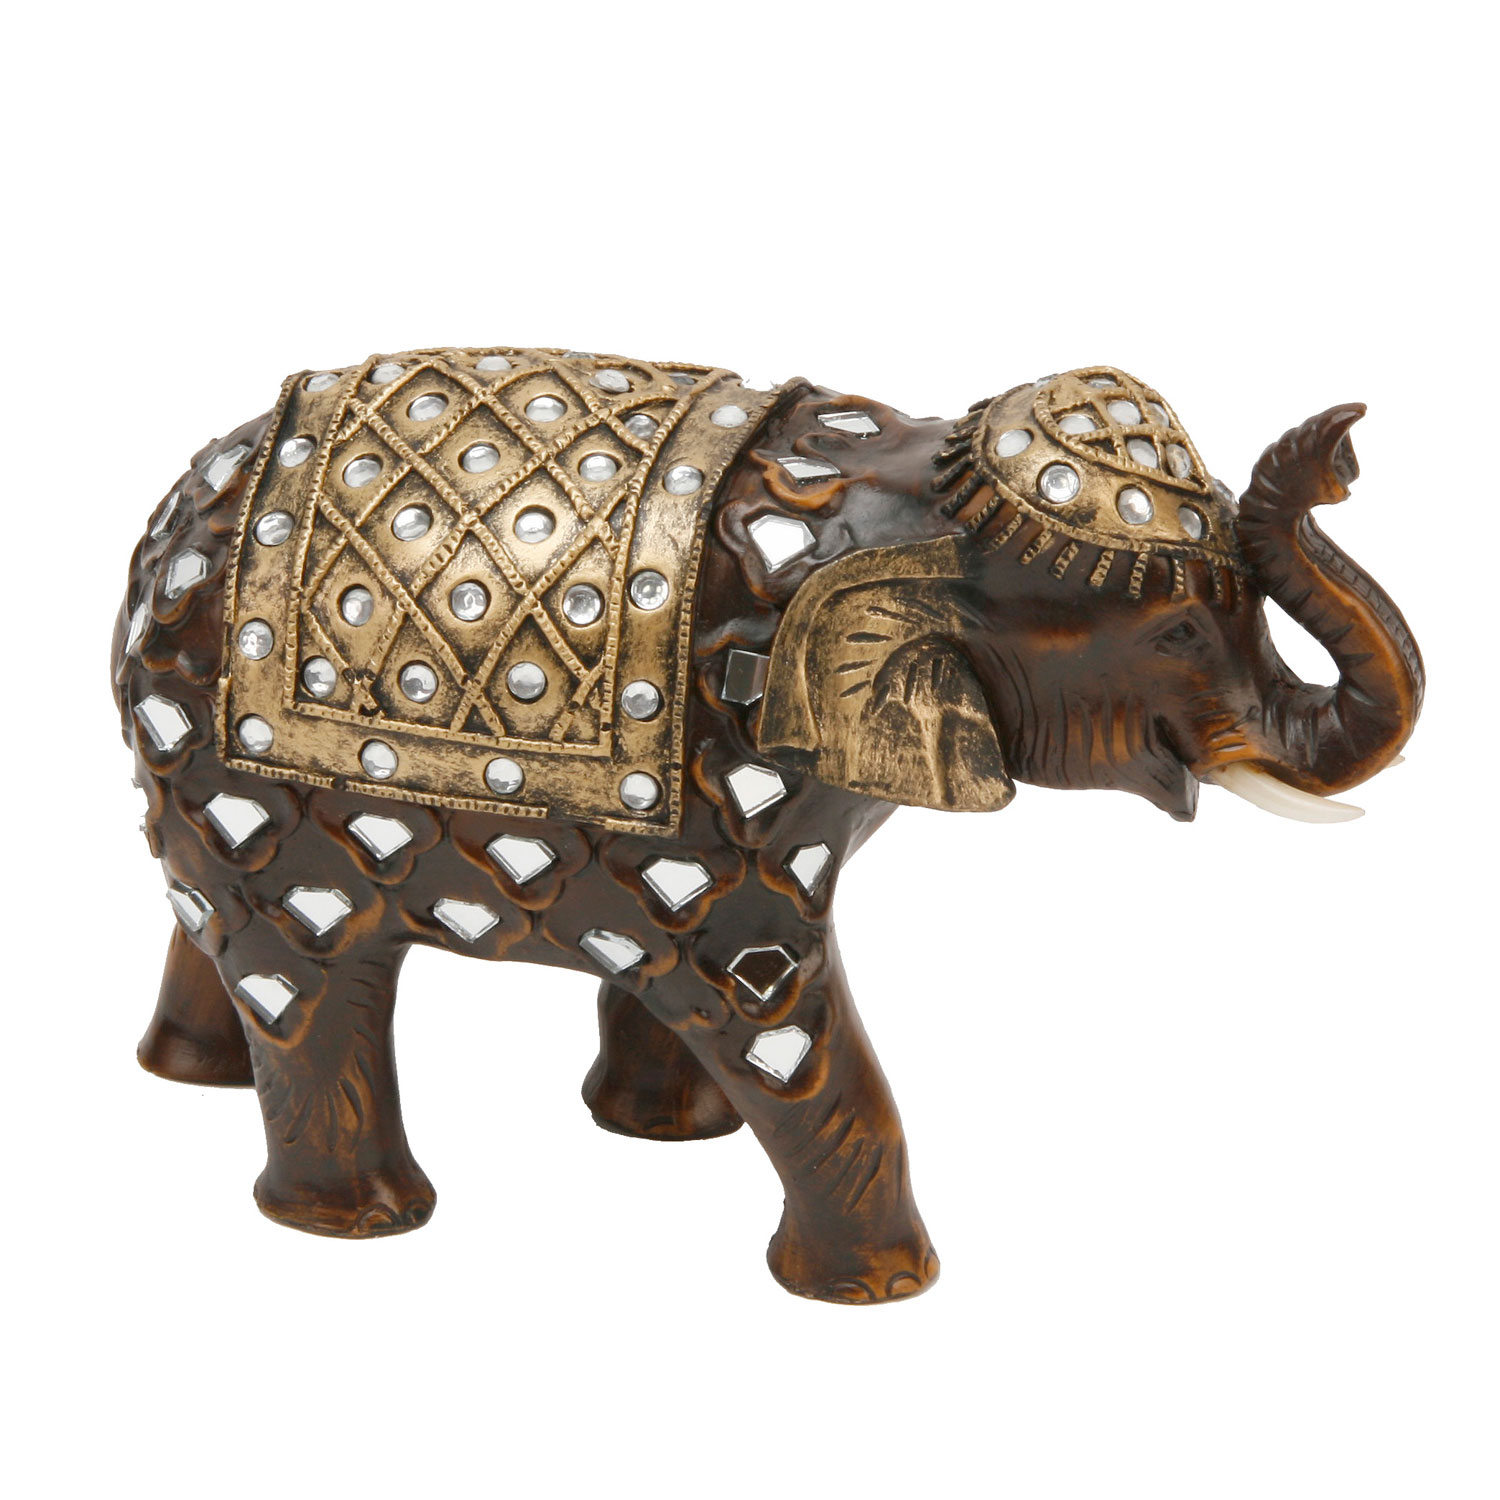 wood effect mirror glass elephant trunk up gift ornament figurine collectable 4 ebay. Black Bedroom Furniture Sets. Home Design Ideas